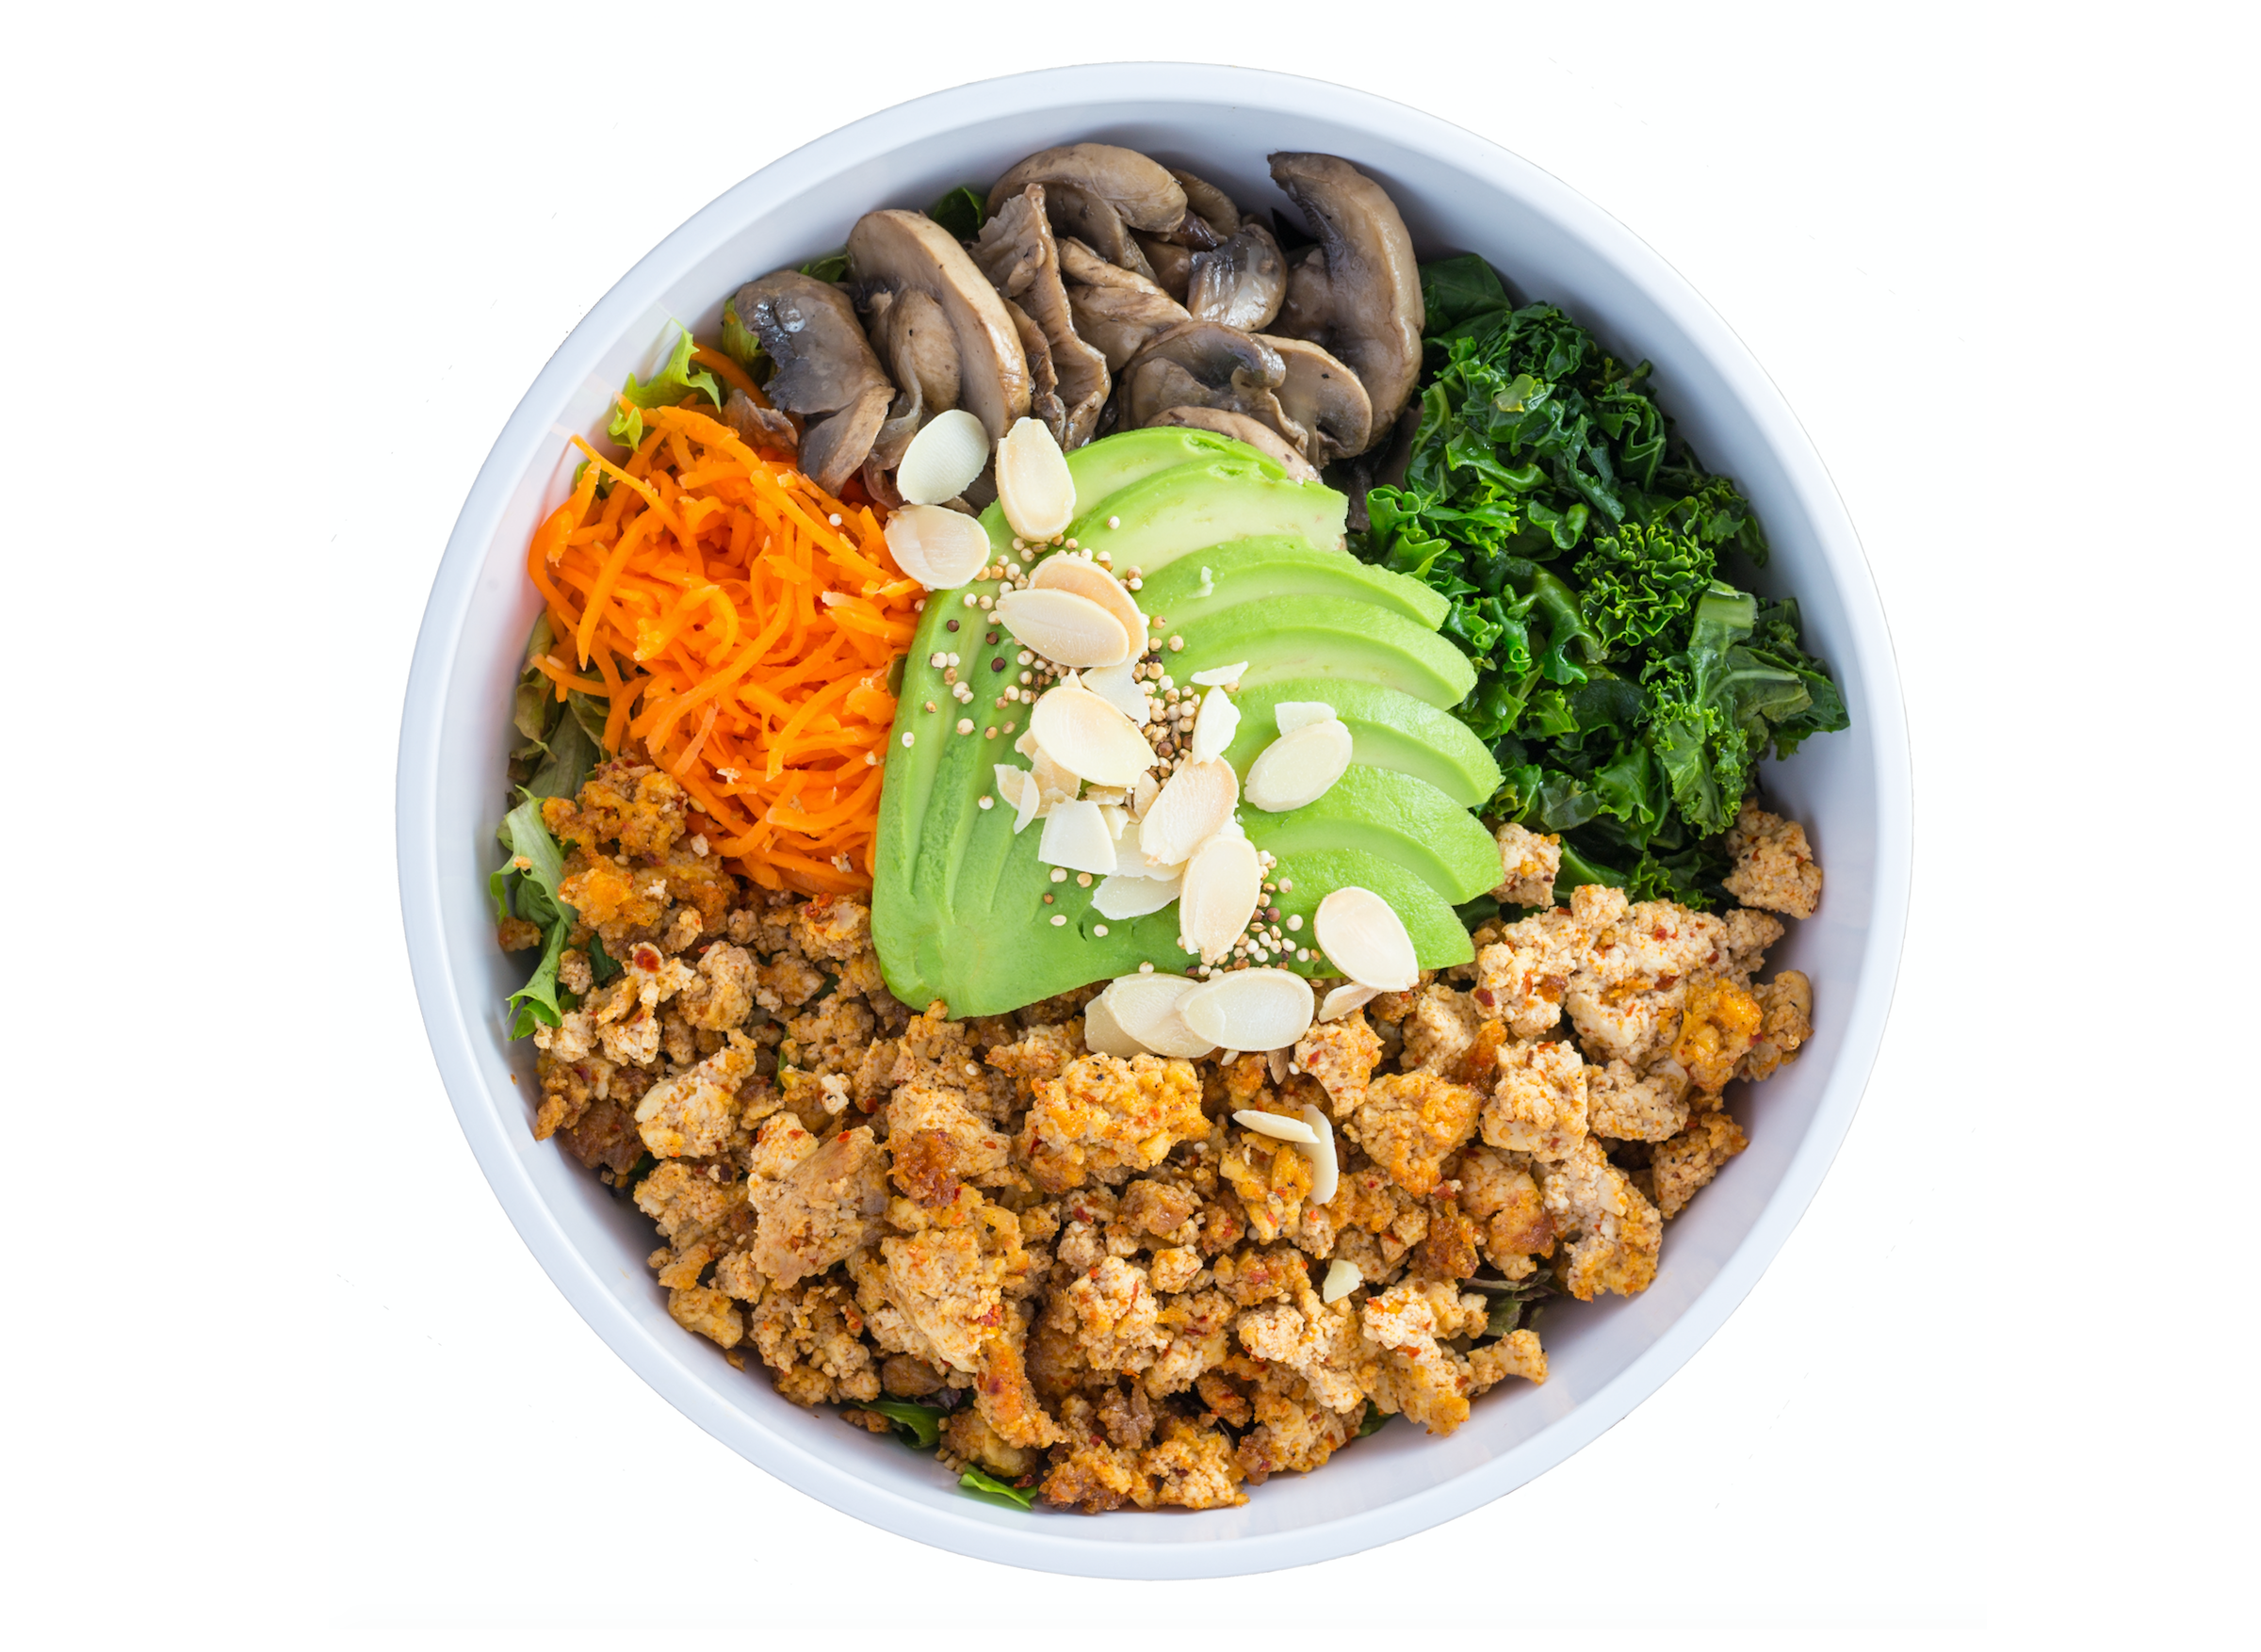 bowl with vegetables and protein